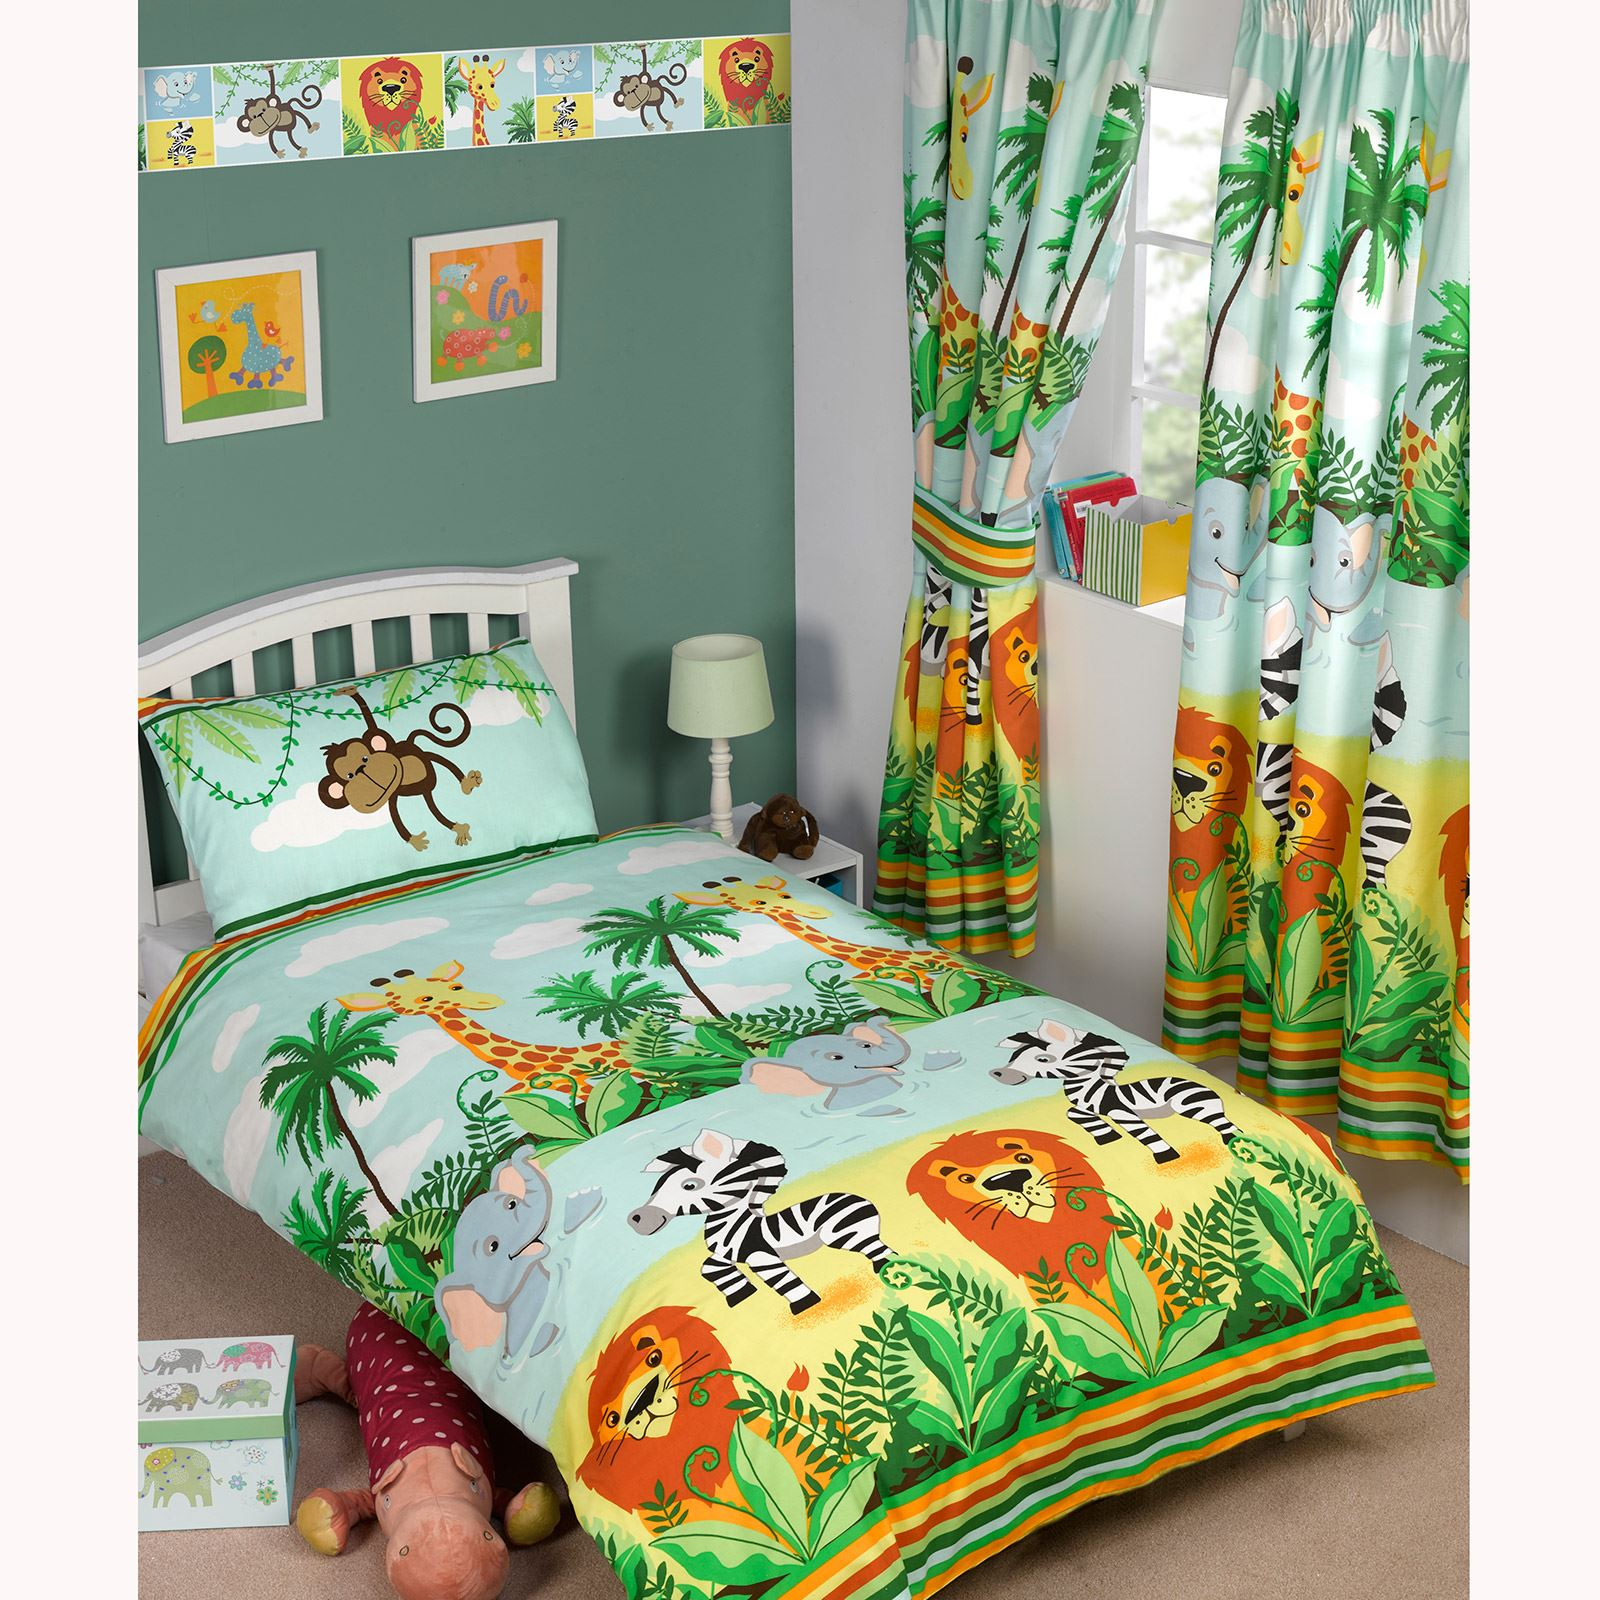 Kids Wallpaper Borders Dinosaurs Army Jungle Tastic Pricerighthome Exclusive New Ebay